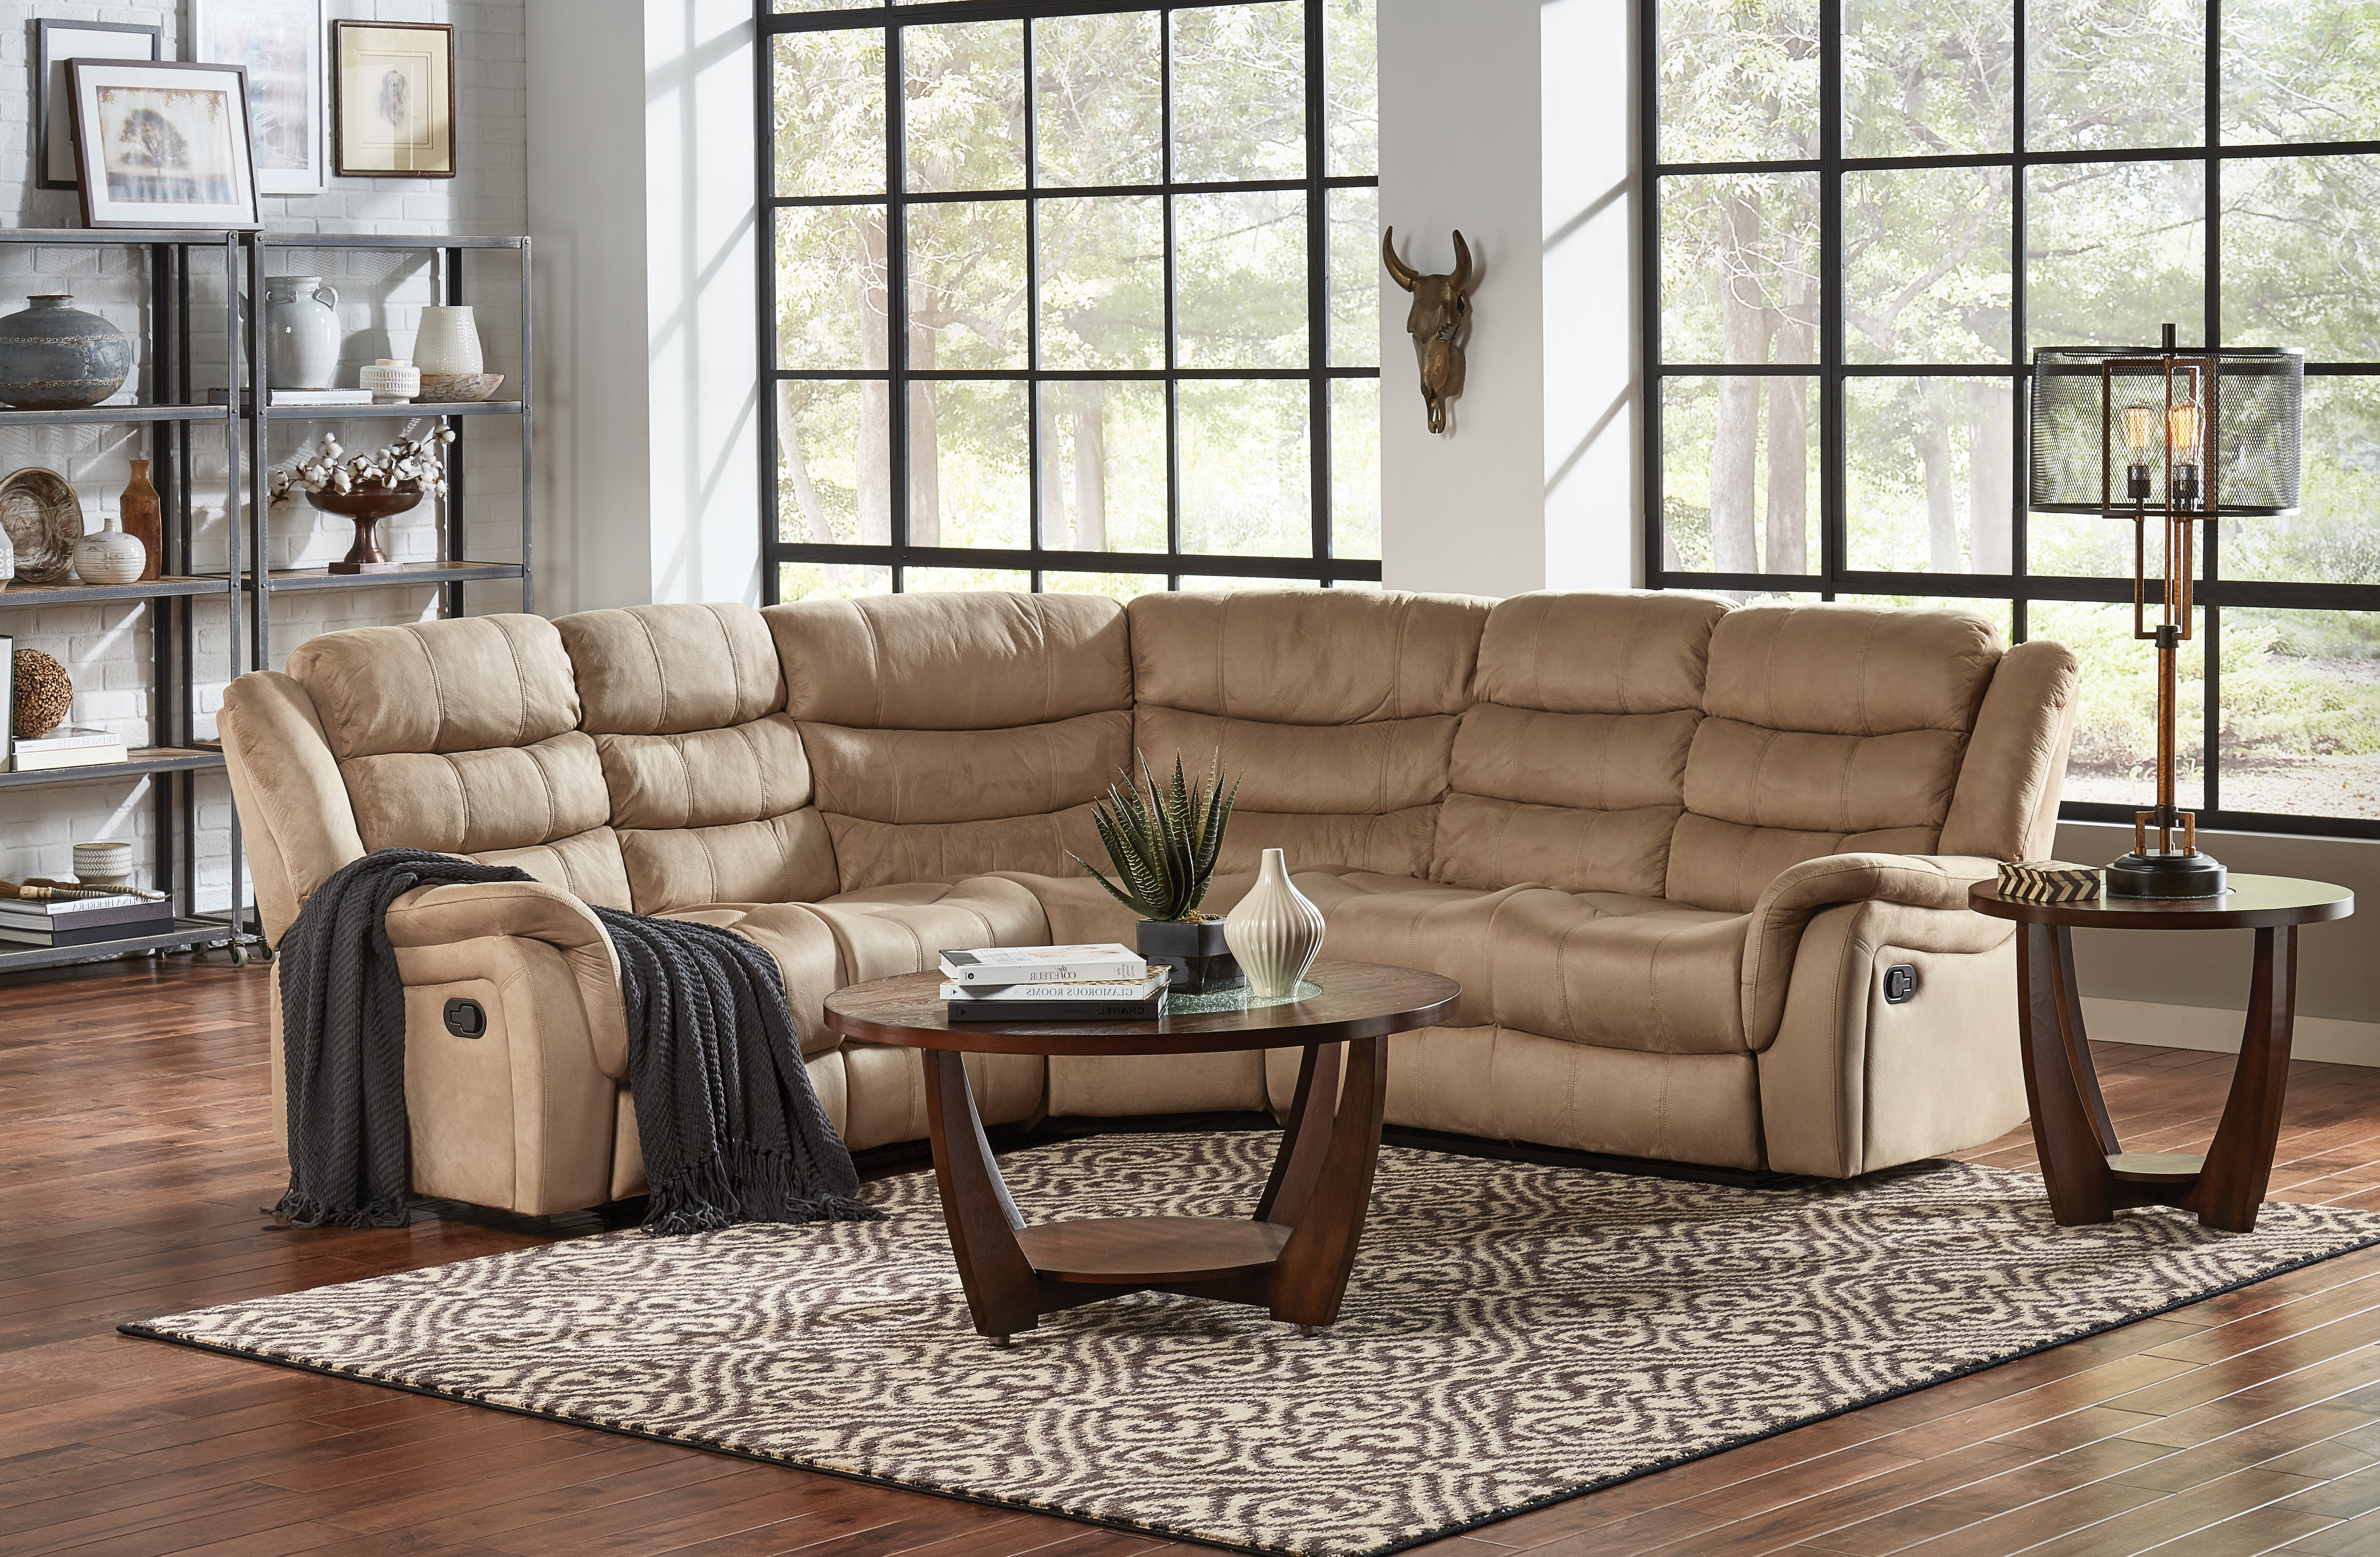 Benton 3pc Reclining Sectional (View 3 of 20)